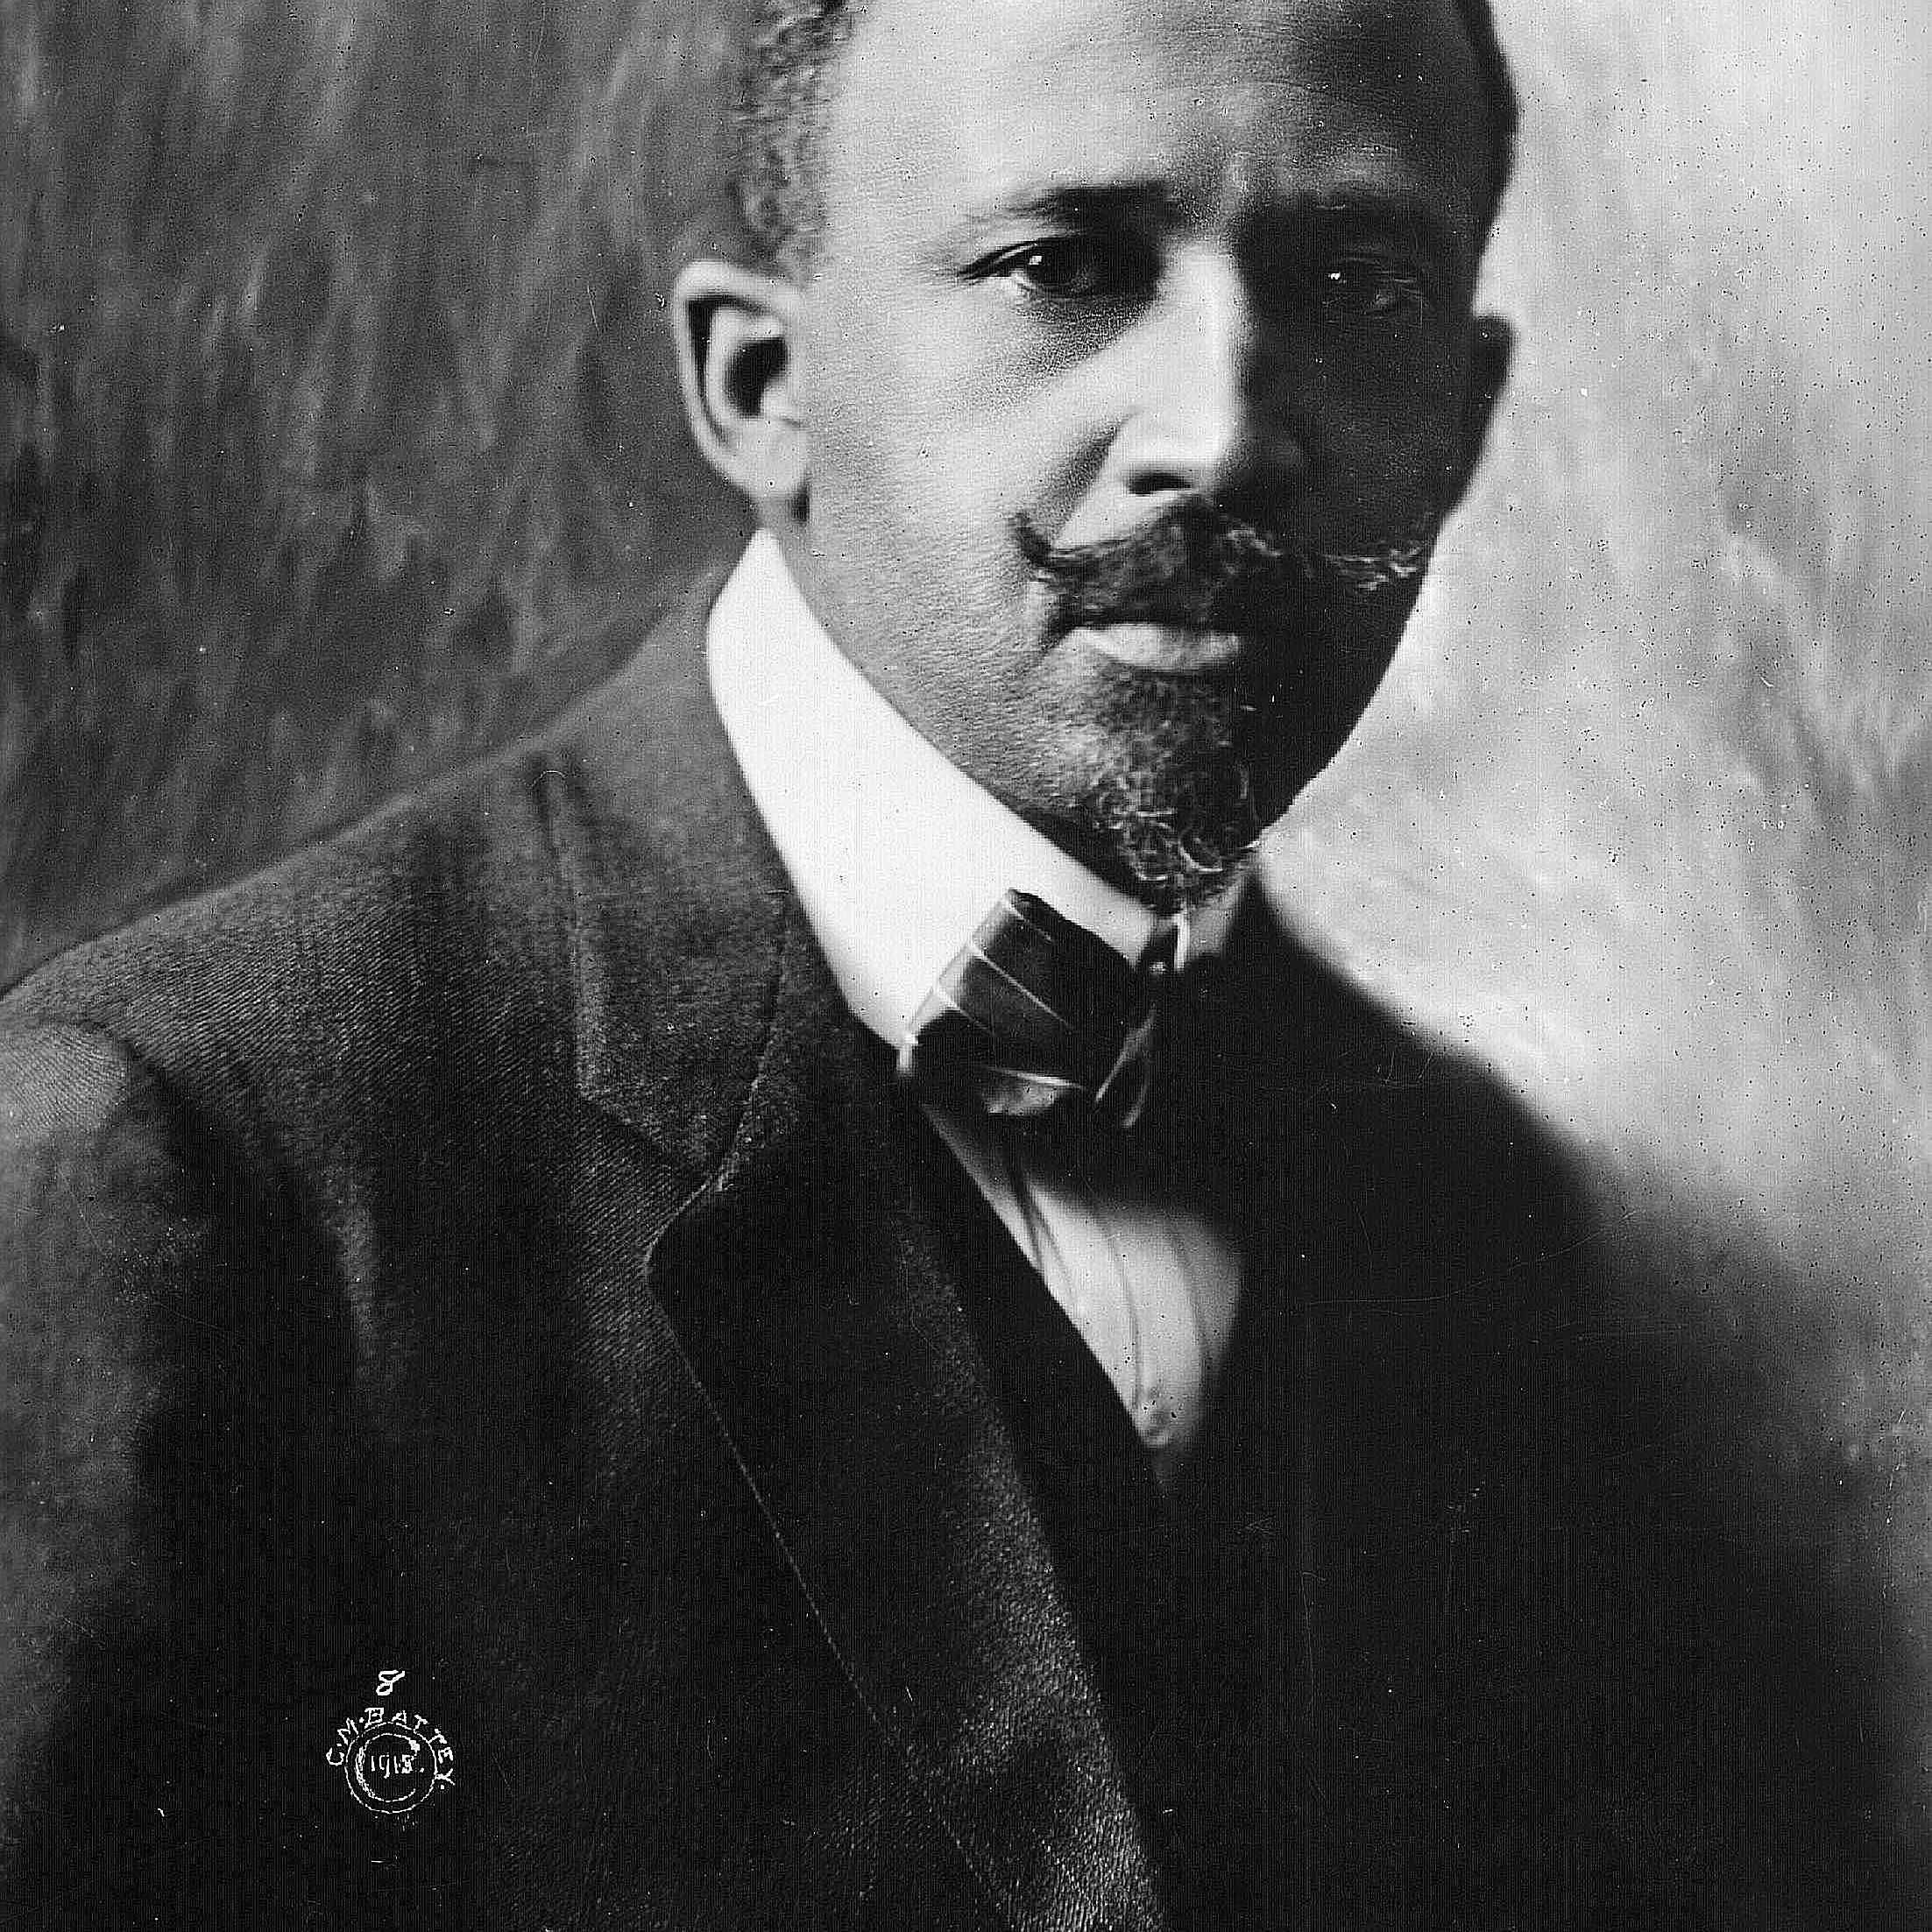 W.E.B. DuBois, a founder of American sociology and great Black intellectual made lasting contributions to social science theory and research.